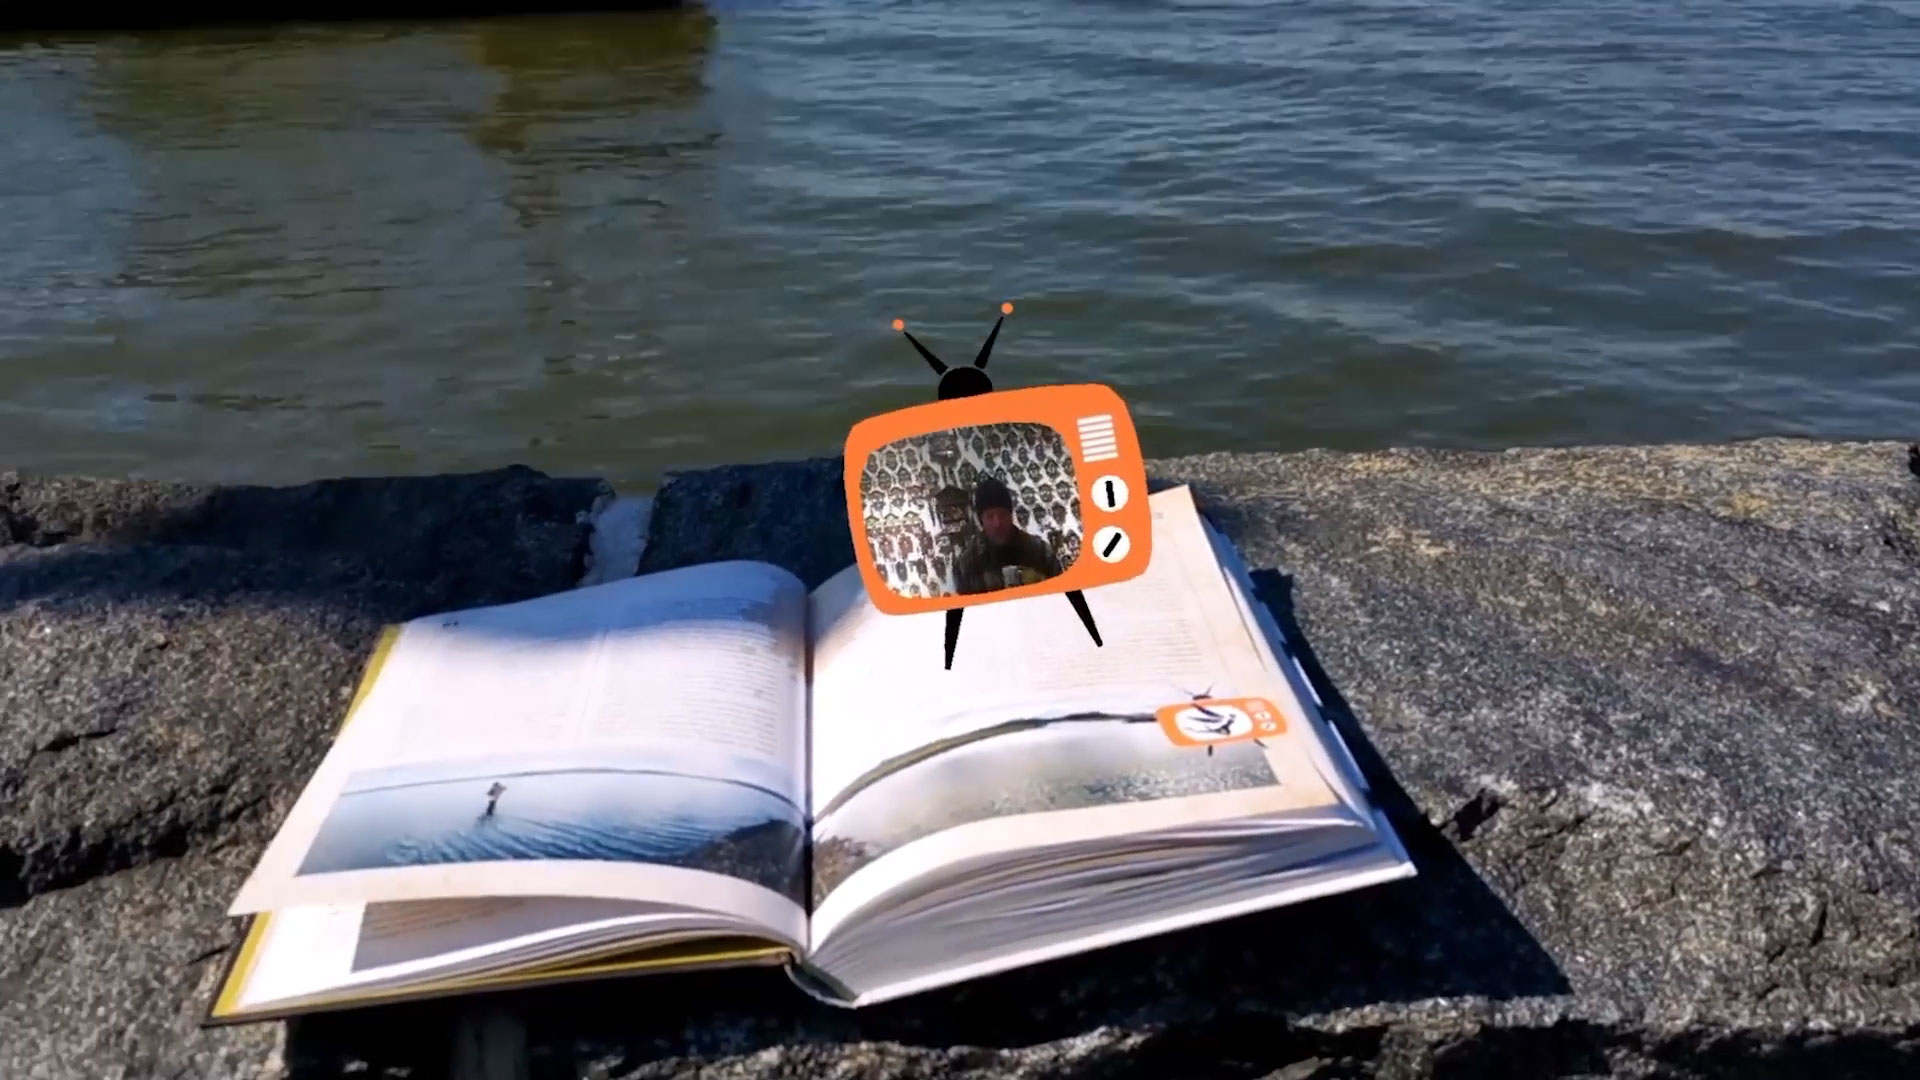 Nonfiction literature enhanced with AR